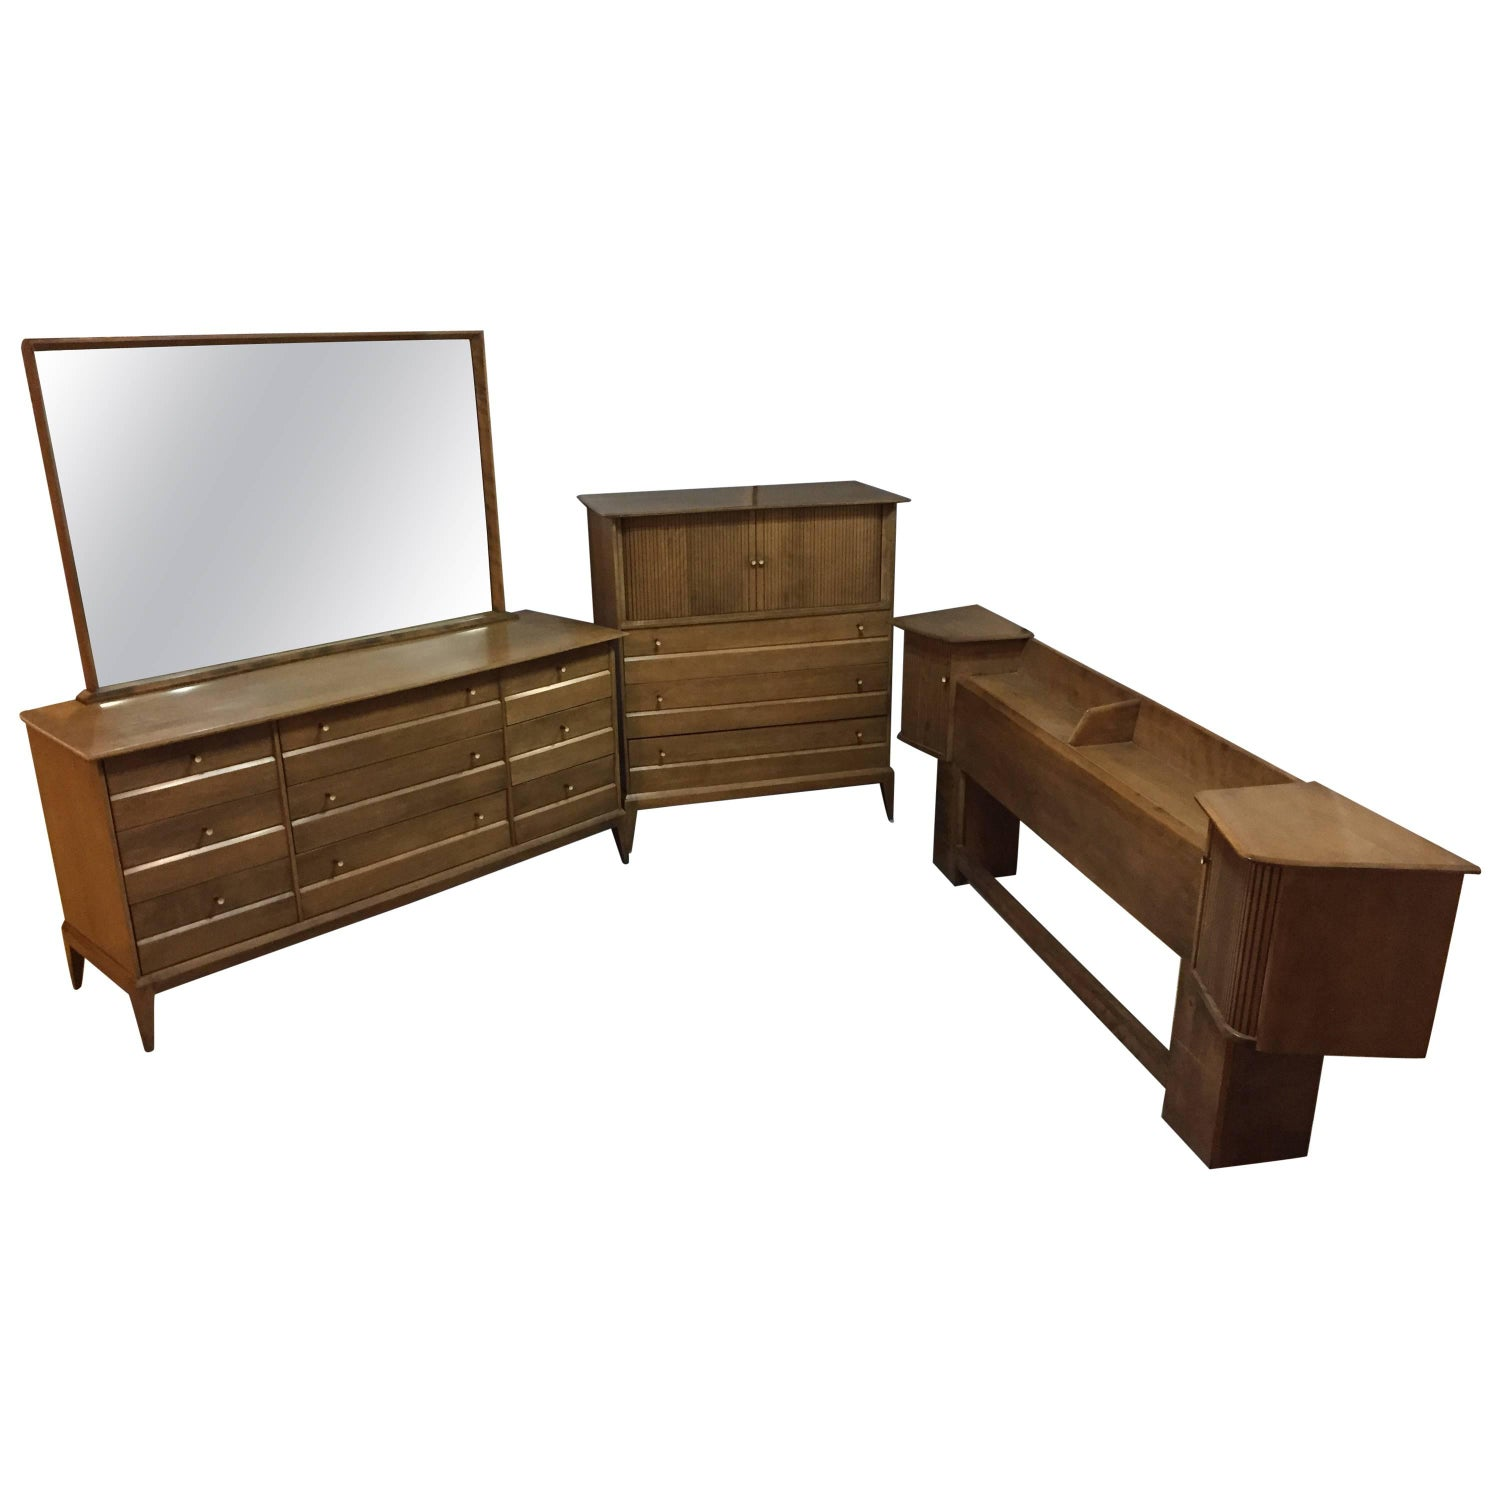 Design Mid Century Modern Bedroom Set mid century modern bedroom sets 99 for sale at 1stdibs heywood wakefield sable color cadence set